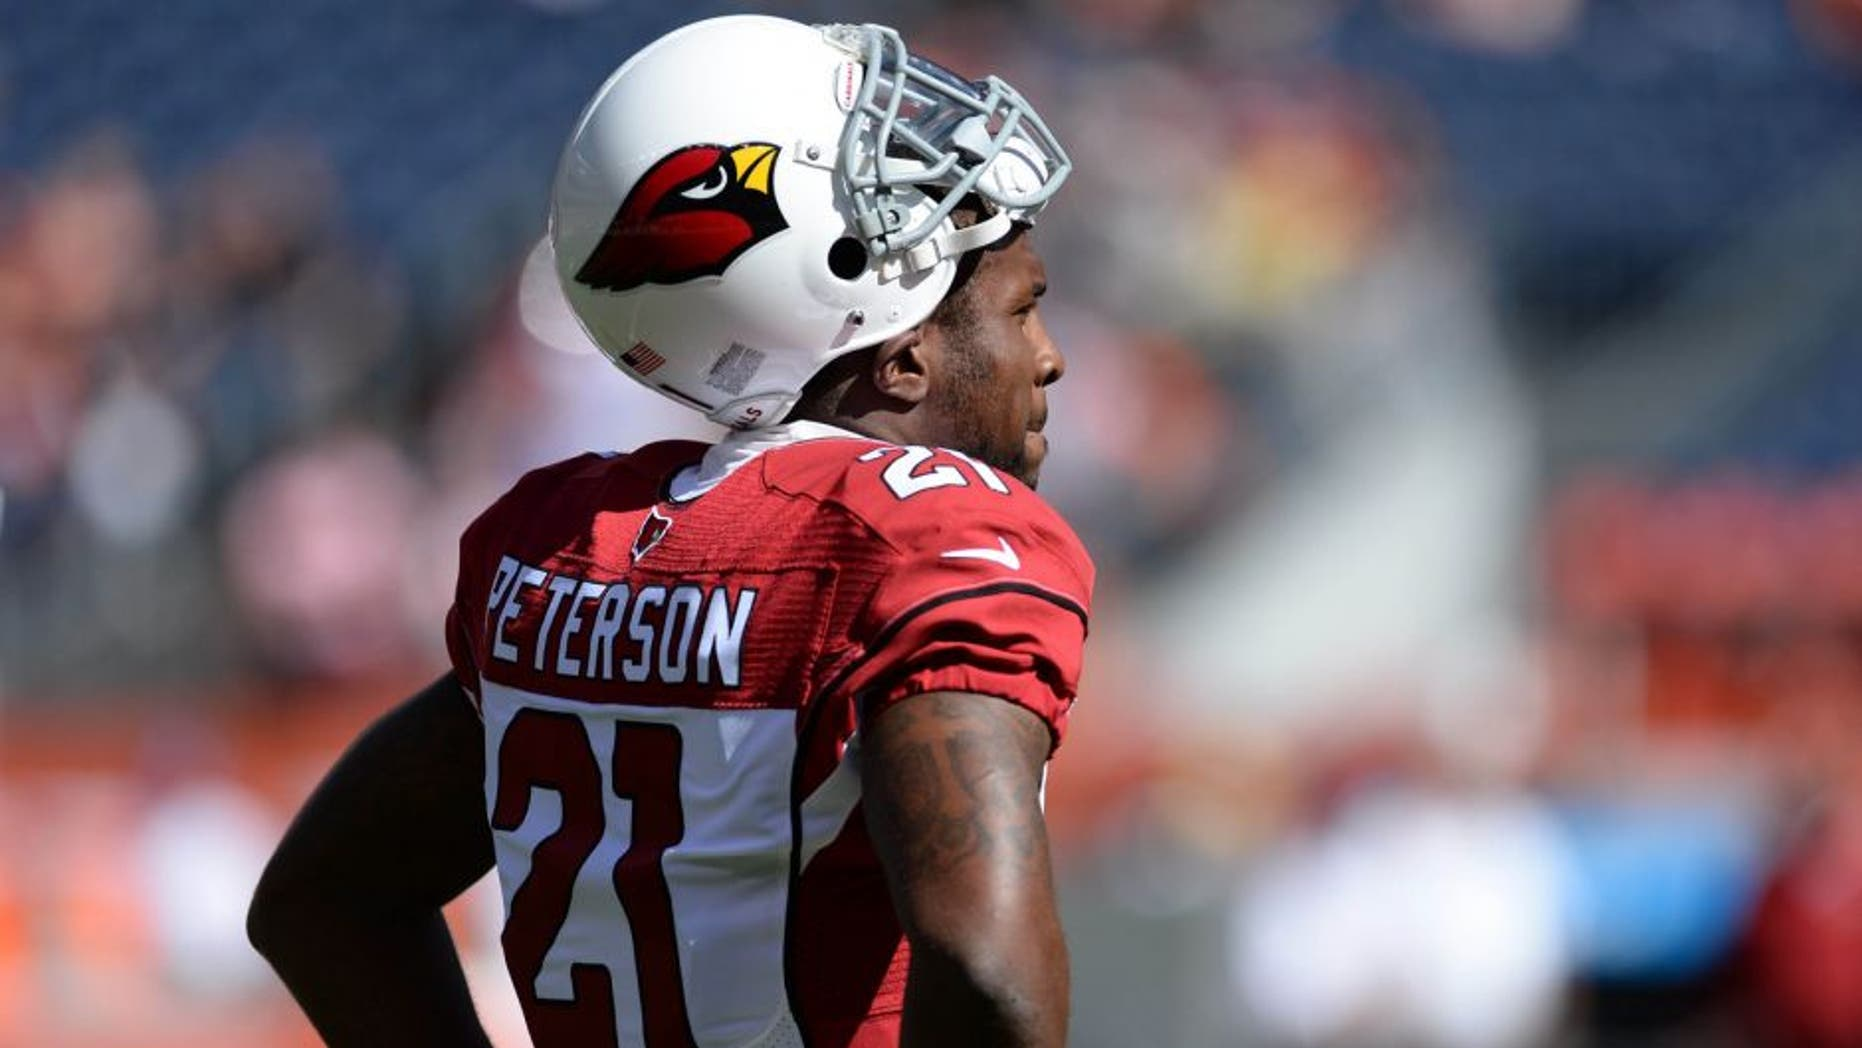 Oct 5, 2014; Denver, CO, USA; Arizona Cardinals cornerback Patrick Peterson (21) before the start of the game against the Denver Broncos at Sports Authority Field at Mile High. Mandatory Credit: Ron Chenoy-USA TODAY Sports